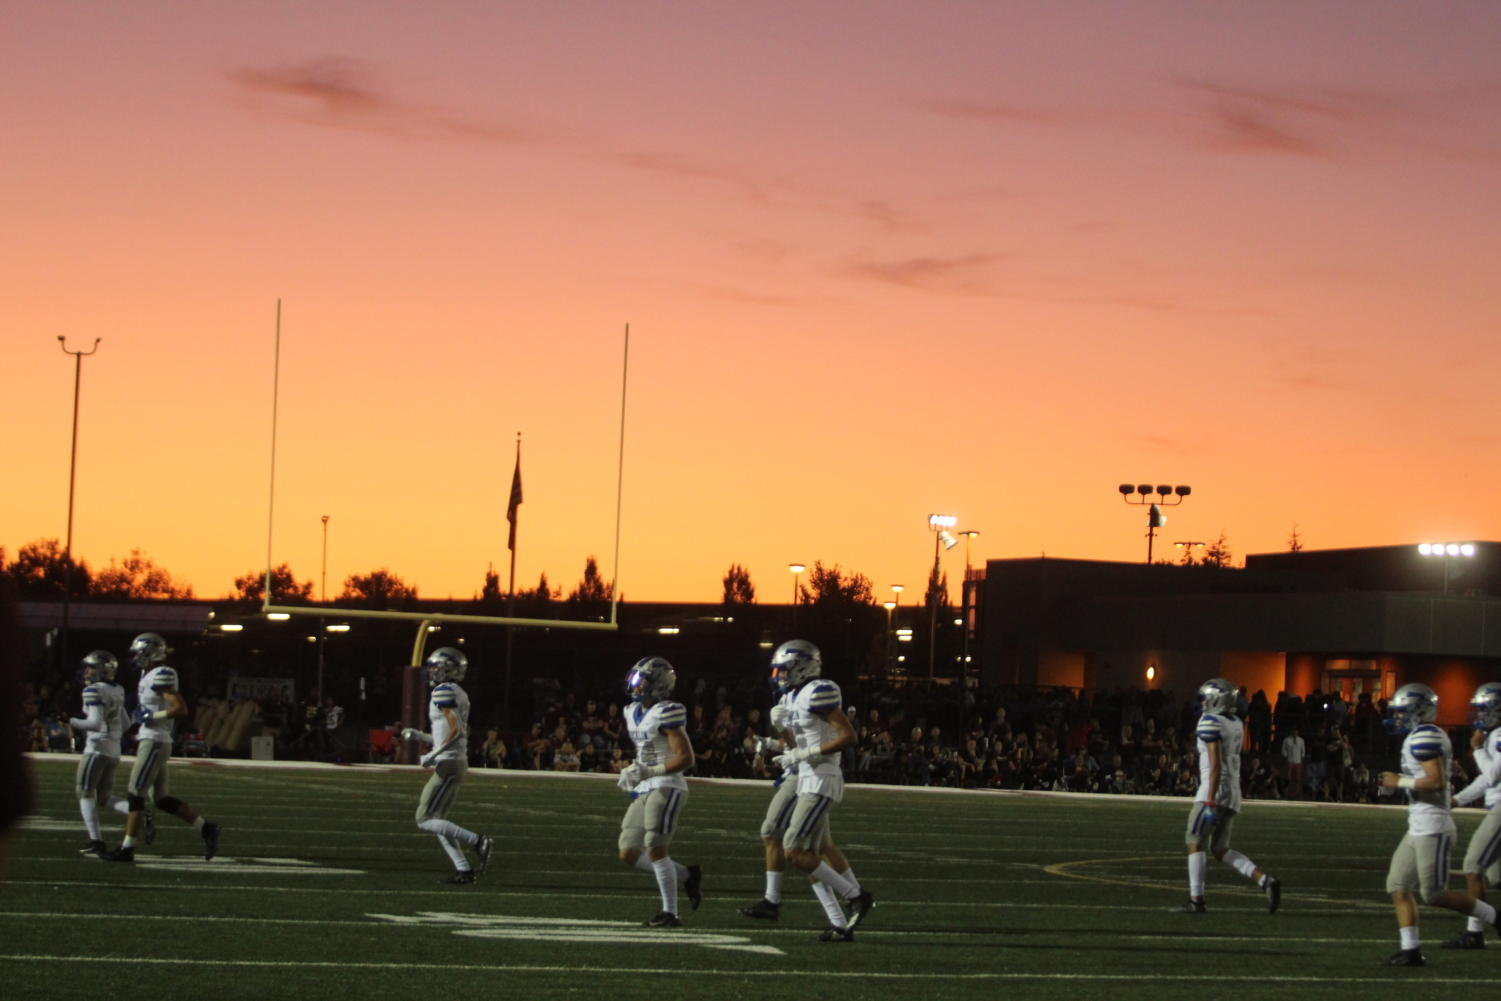 Rocklin football players play just after sunset at Whitney High School  photo by Karine Nguyen